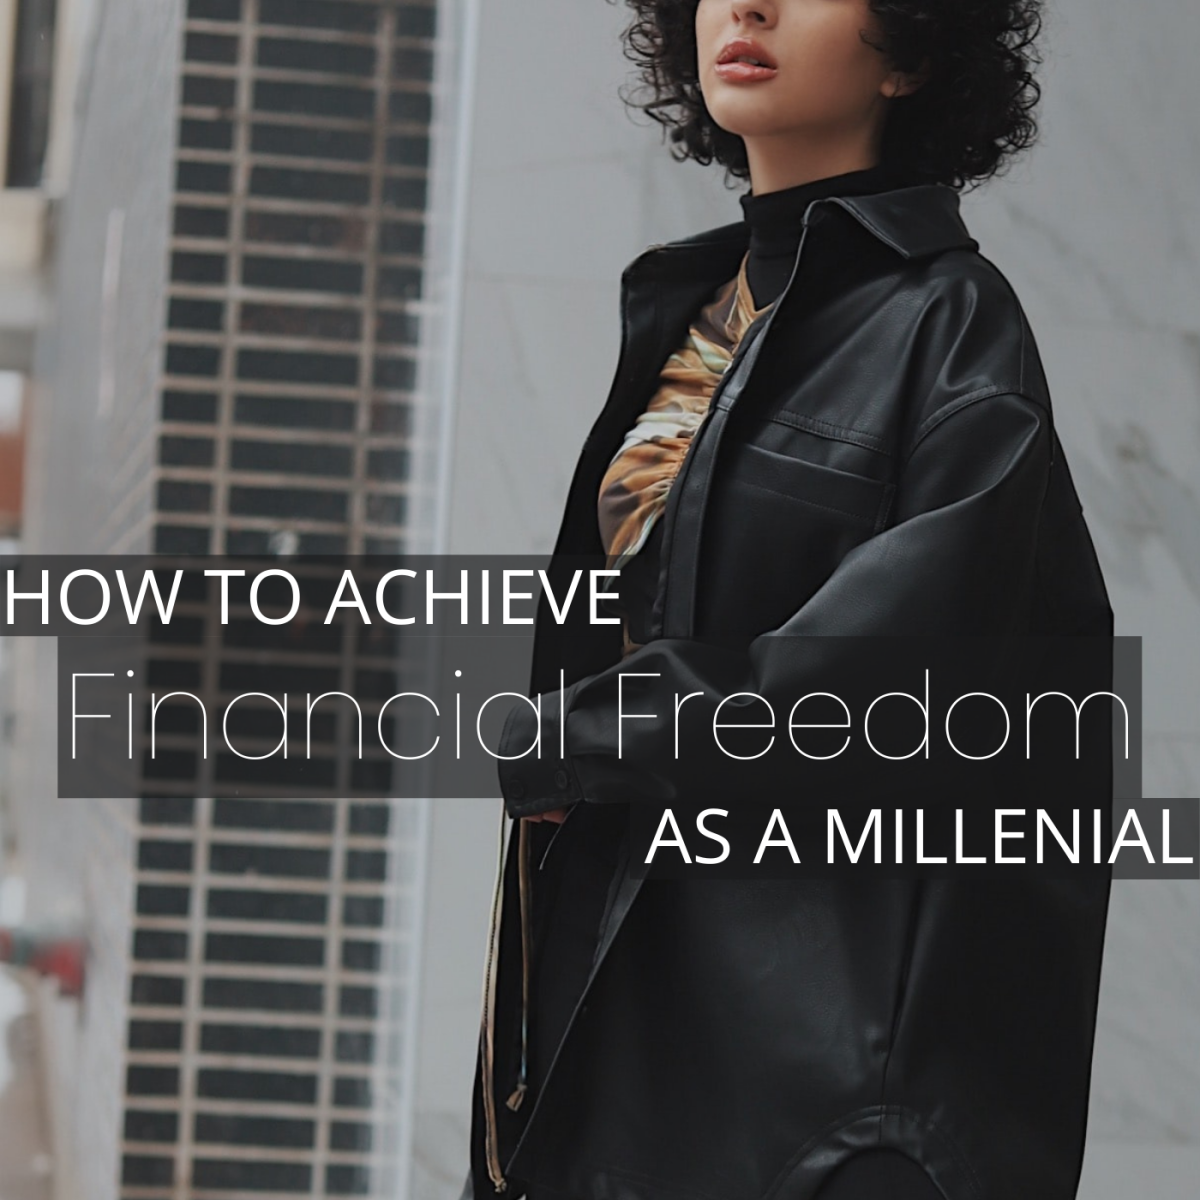 Learn how to take control of your finances even if you are young, in debt, and have a low income.